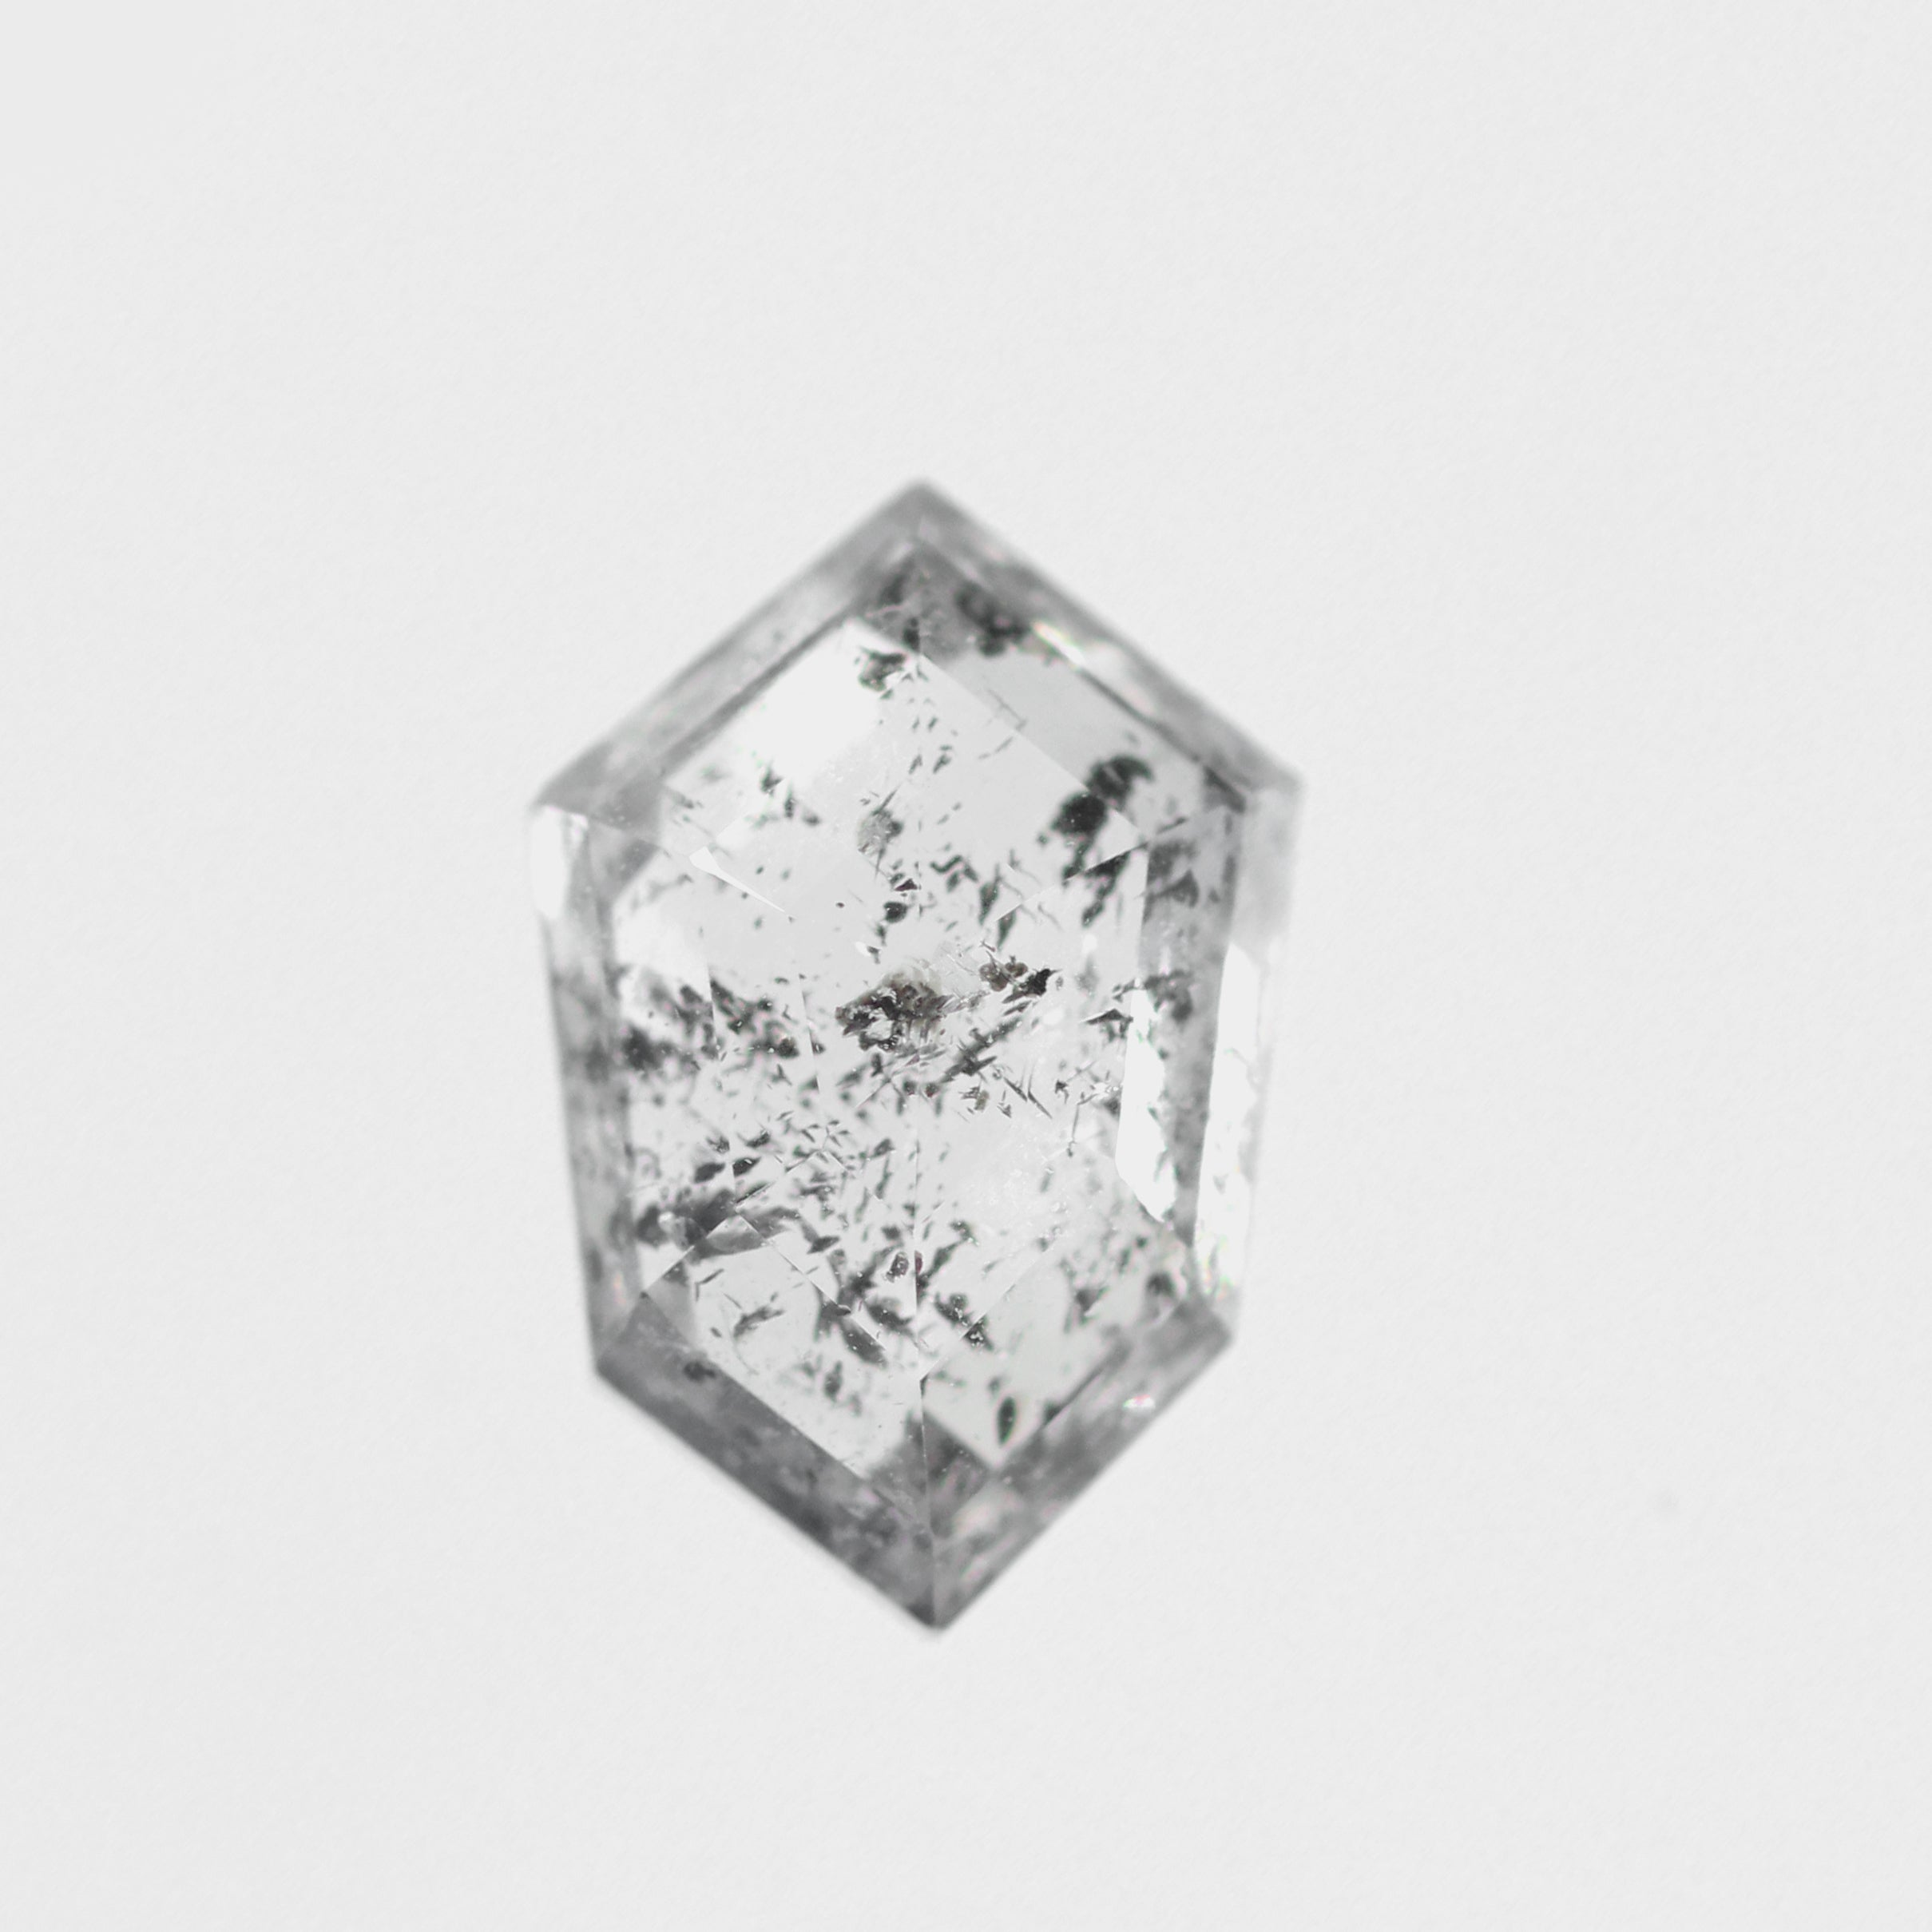 1.03ct Clear Celestial Shield Shaped Celestial Diamond® for Custom Work - Inventory Code BCCS103 - Celestial Diamonds ® by Midwinter Co.